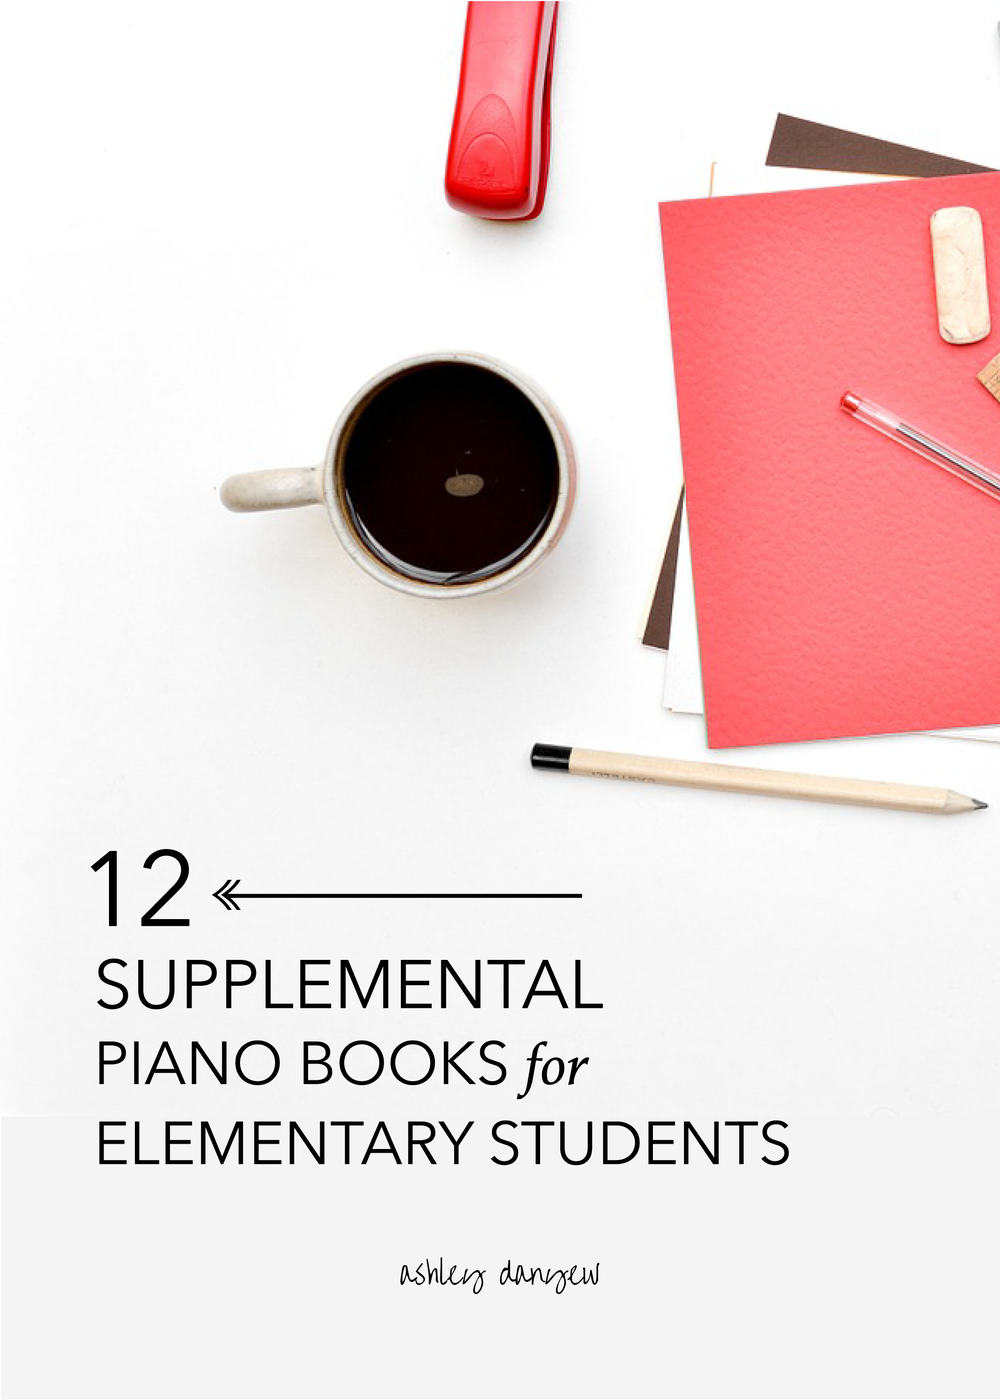 12-Favorite-Supplemental-Piano-Books-for-Elementary-Students-01.png